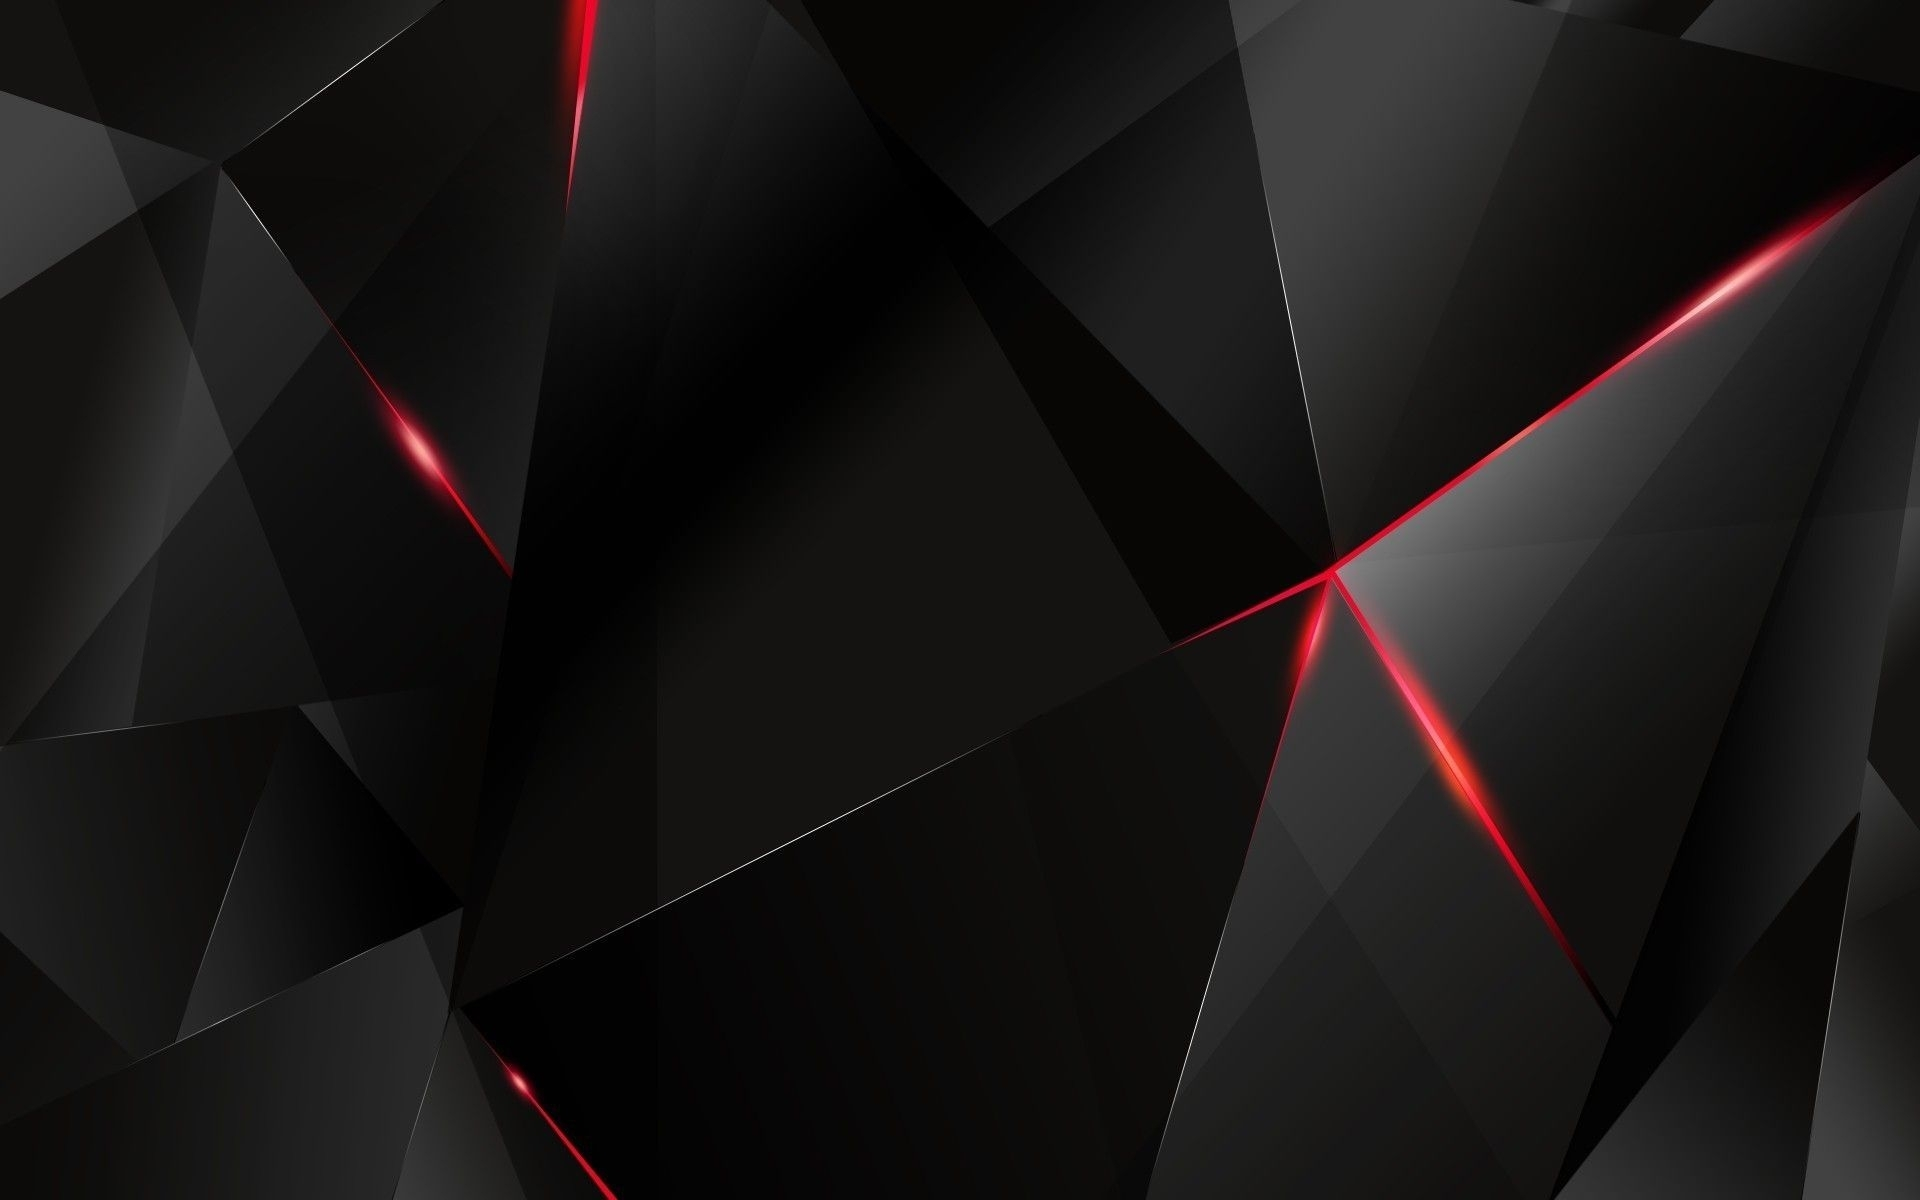 black and red wallpapers hd - wallpaper cave | free wallpapers